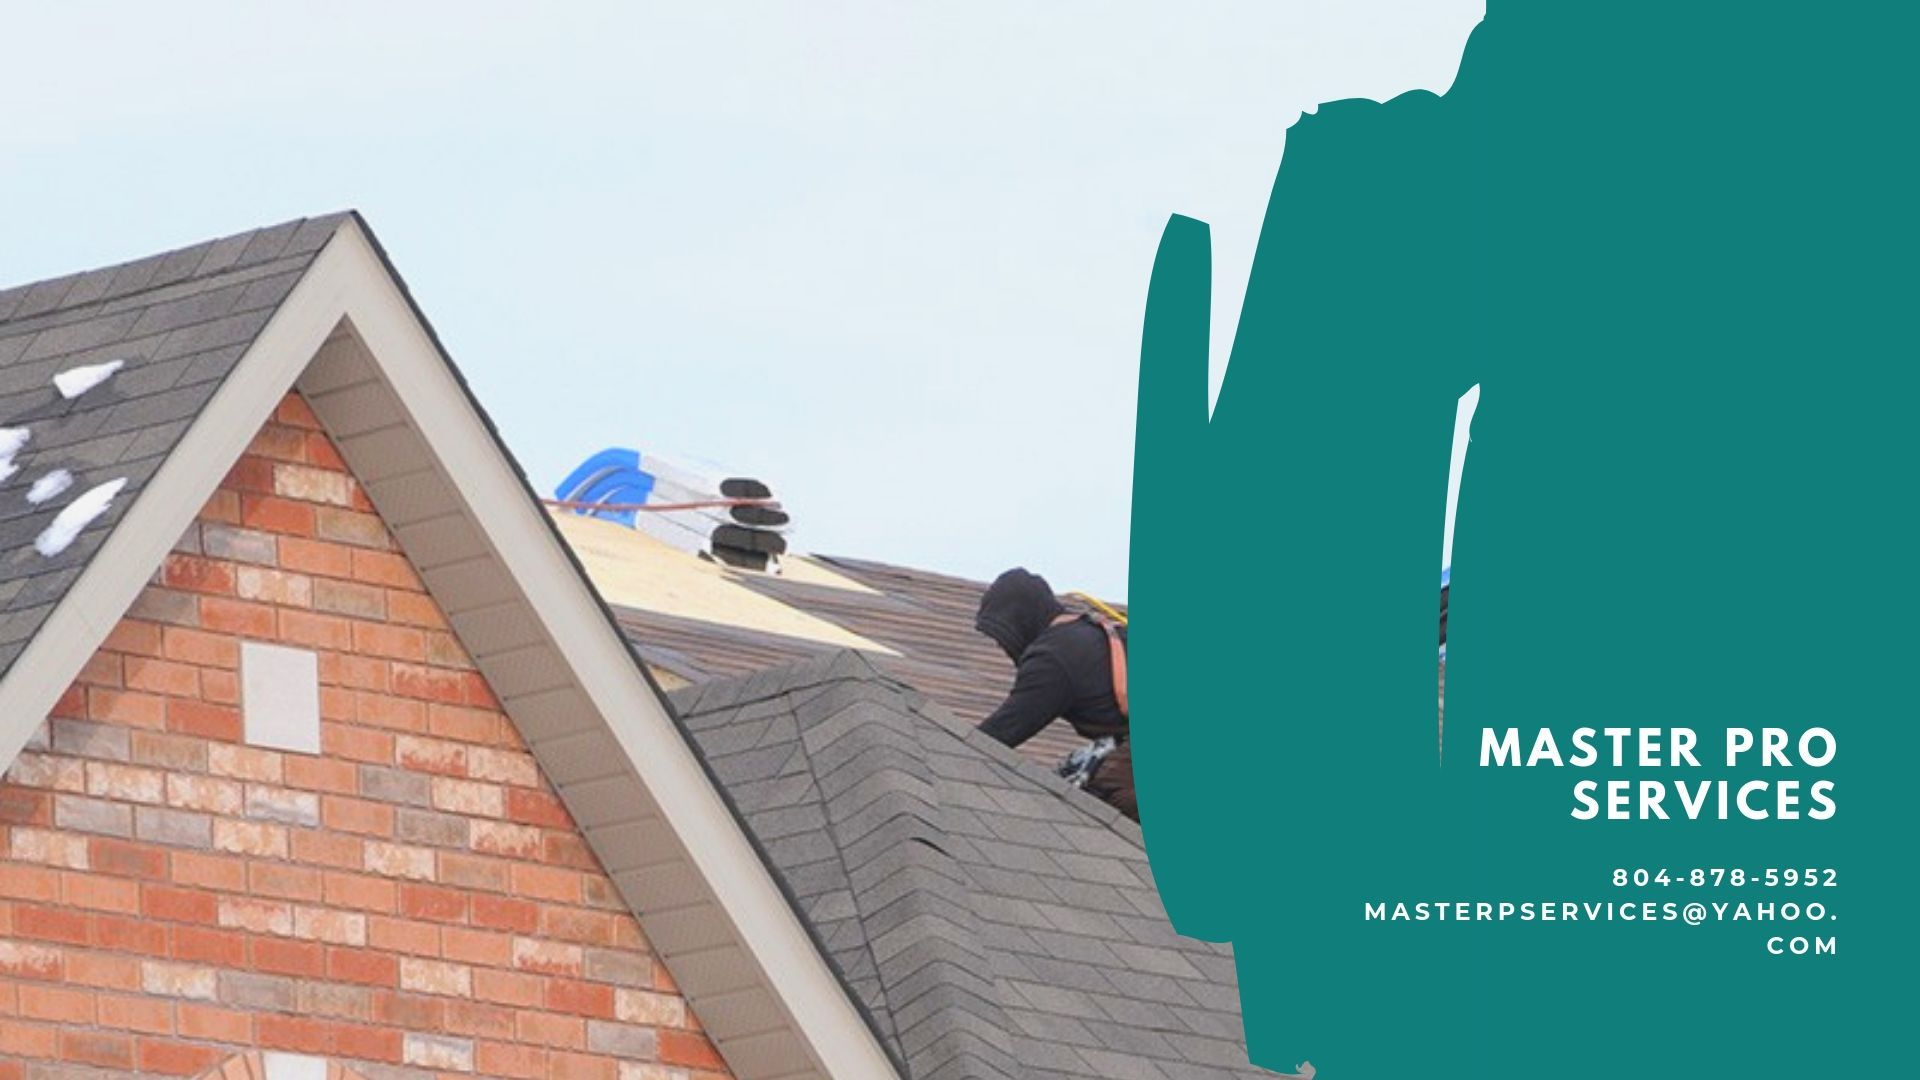 Master Pro Services Prides Itself As Specialized Professional Roofing Company In Richmond Va We Have Been Ins Professional Roofing Residential Roofing Roofing